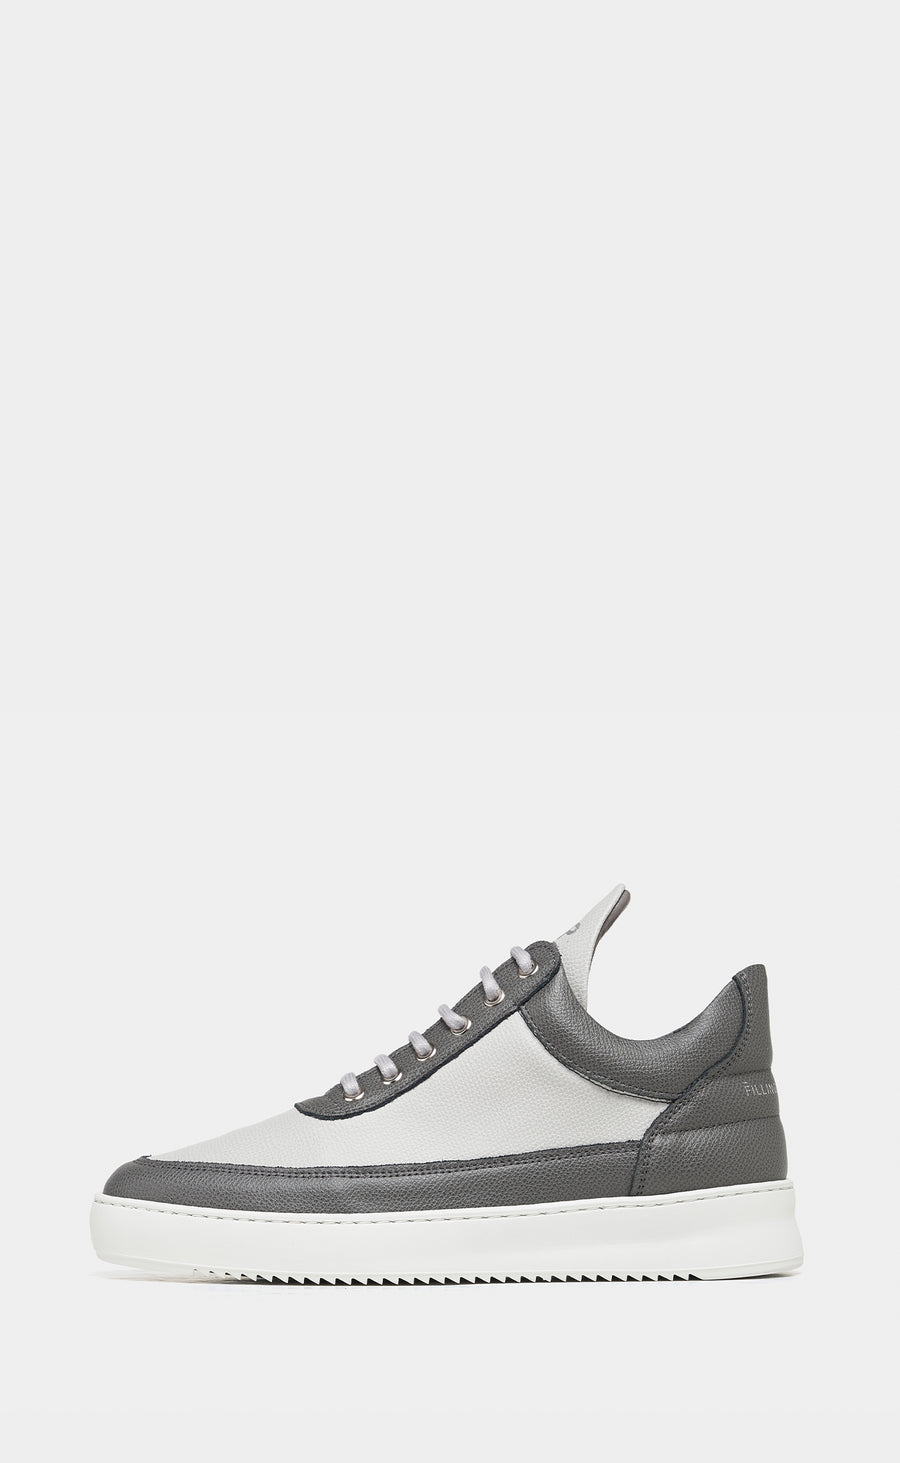 Low Top Ripple Crumbs All Grey - men